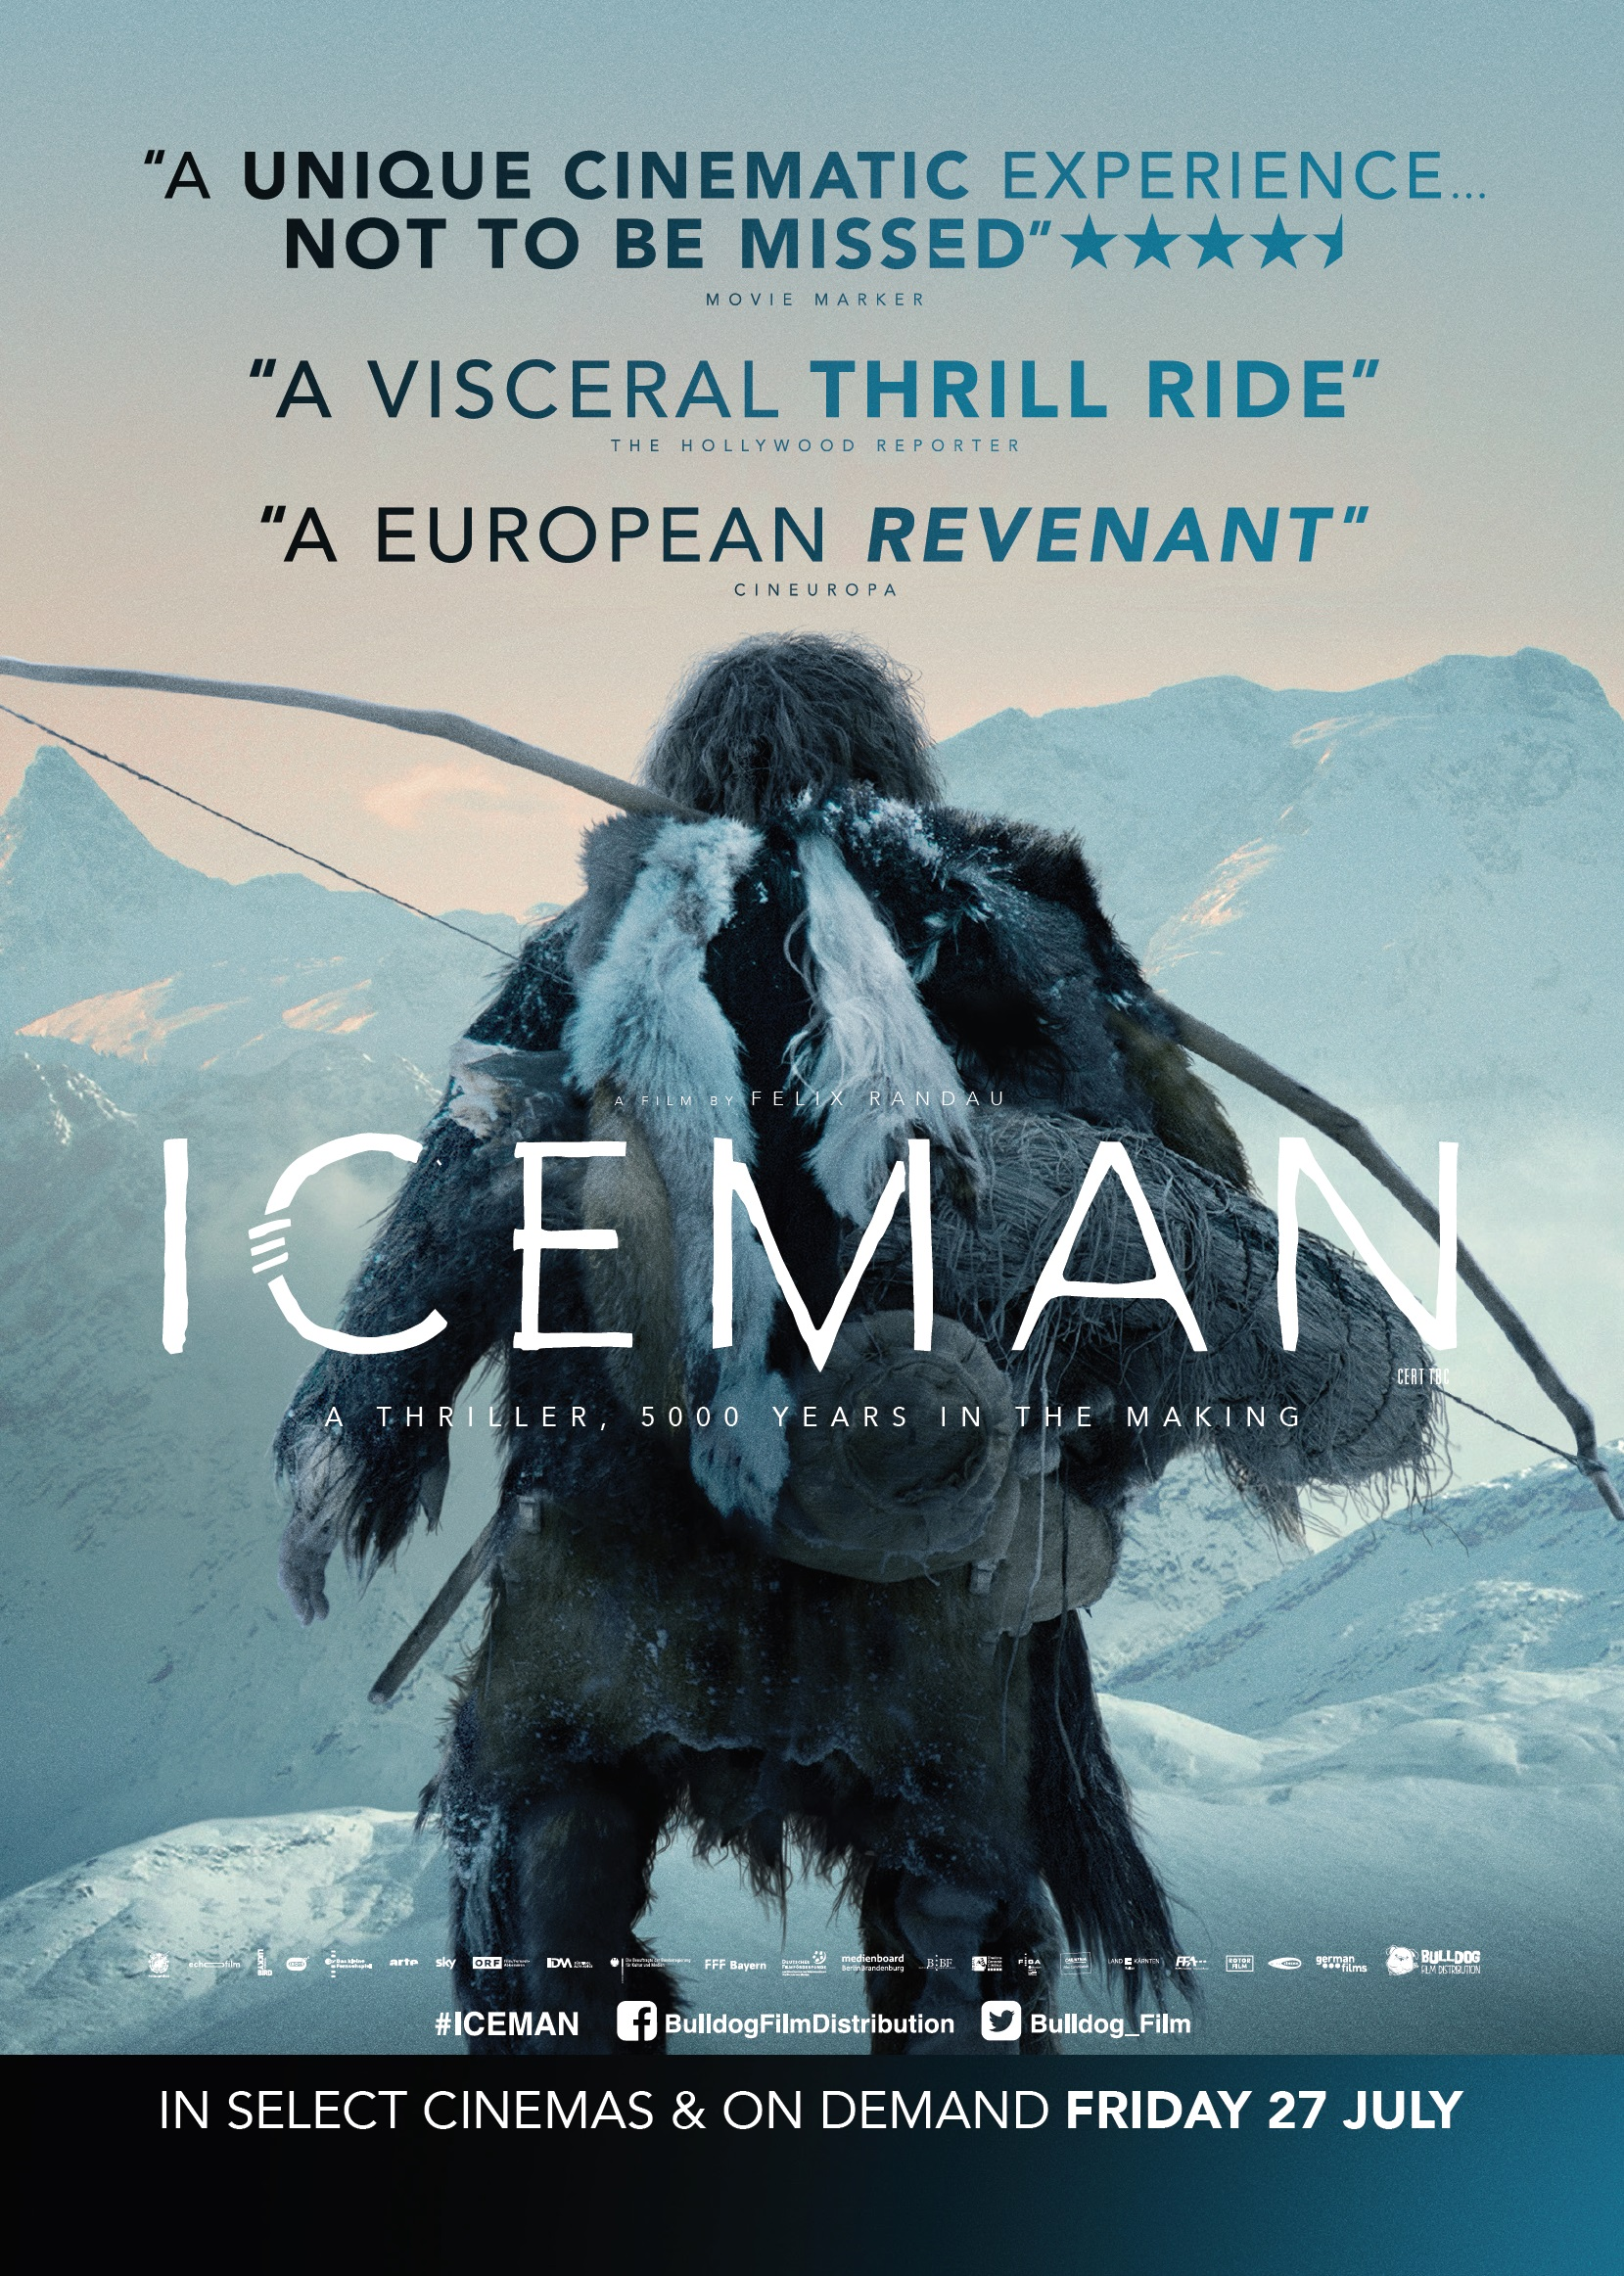 'Iceman' to be released on 27th July 2018